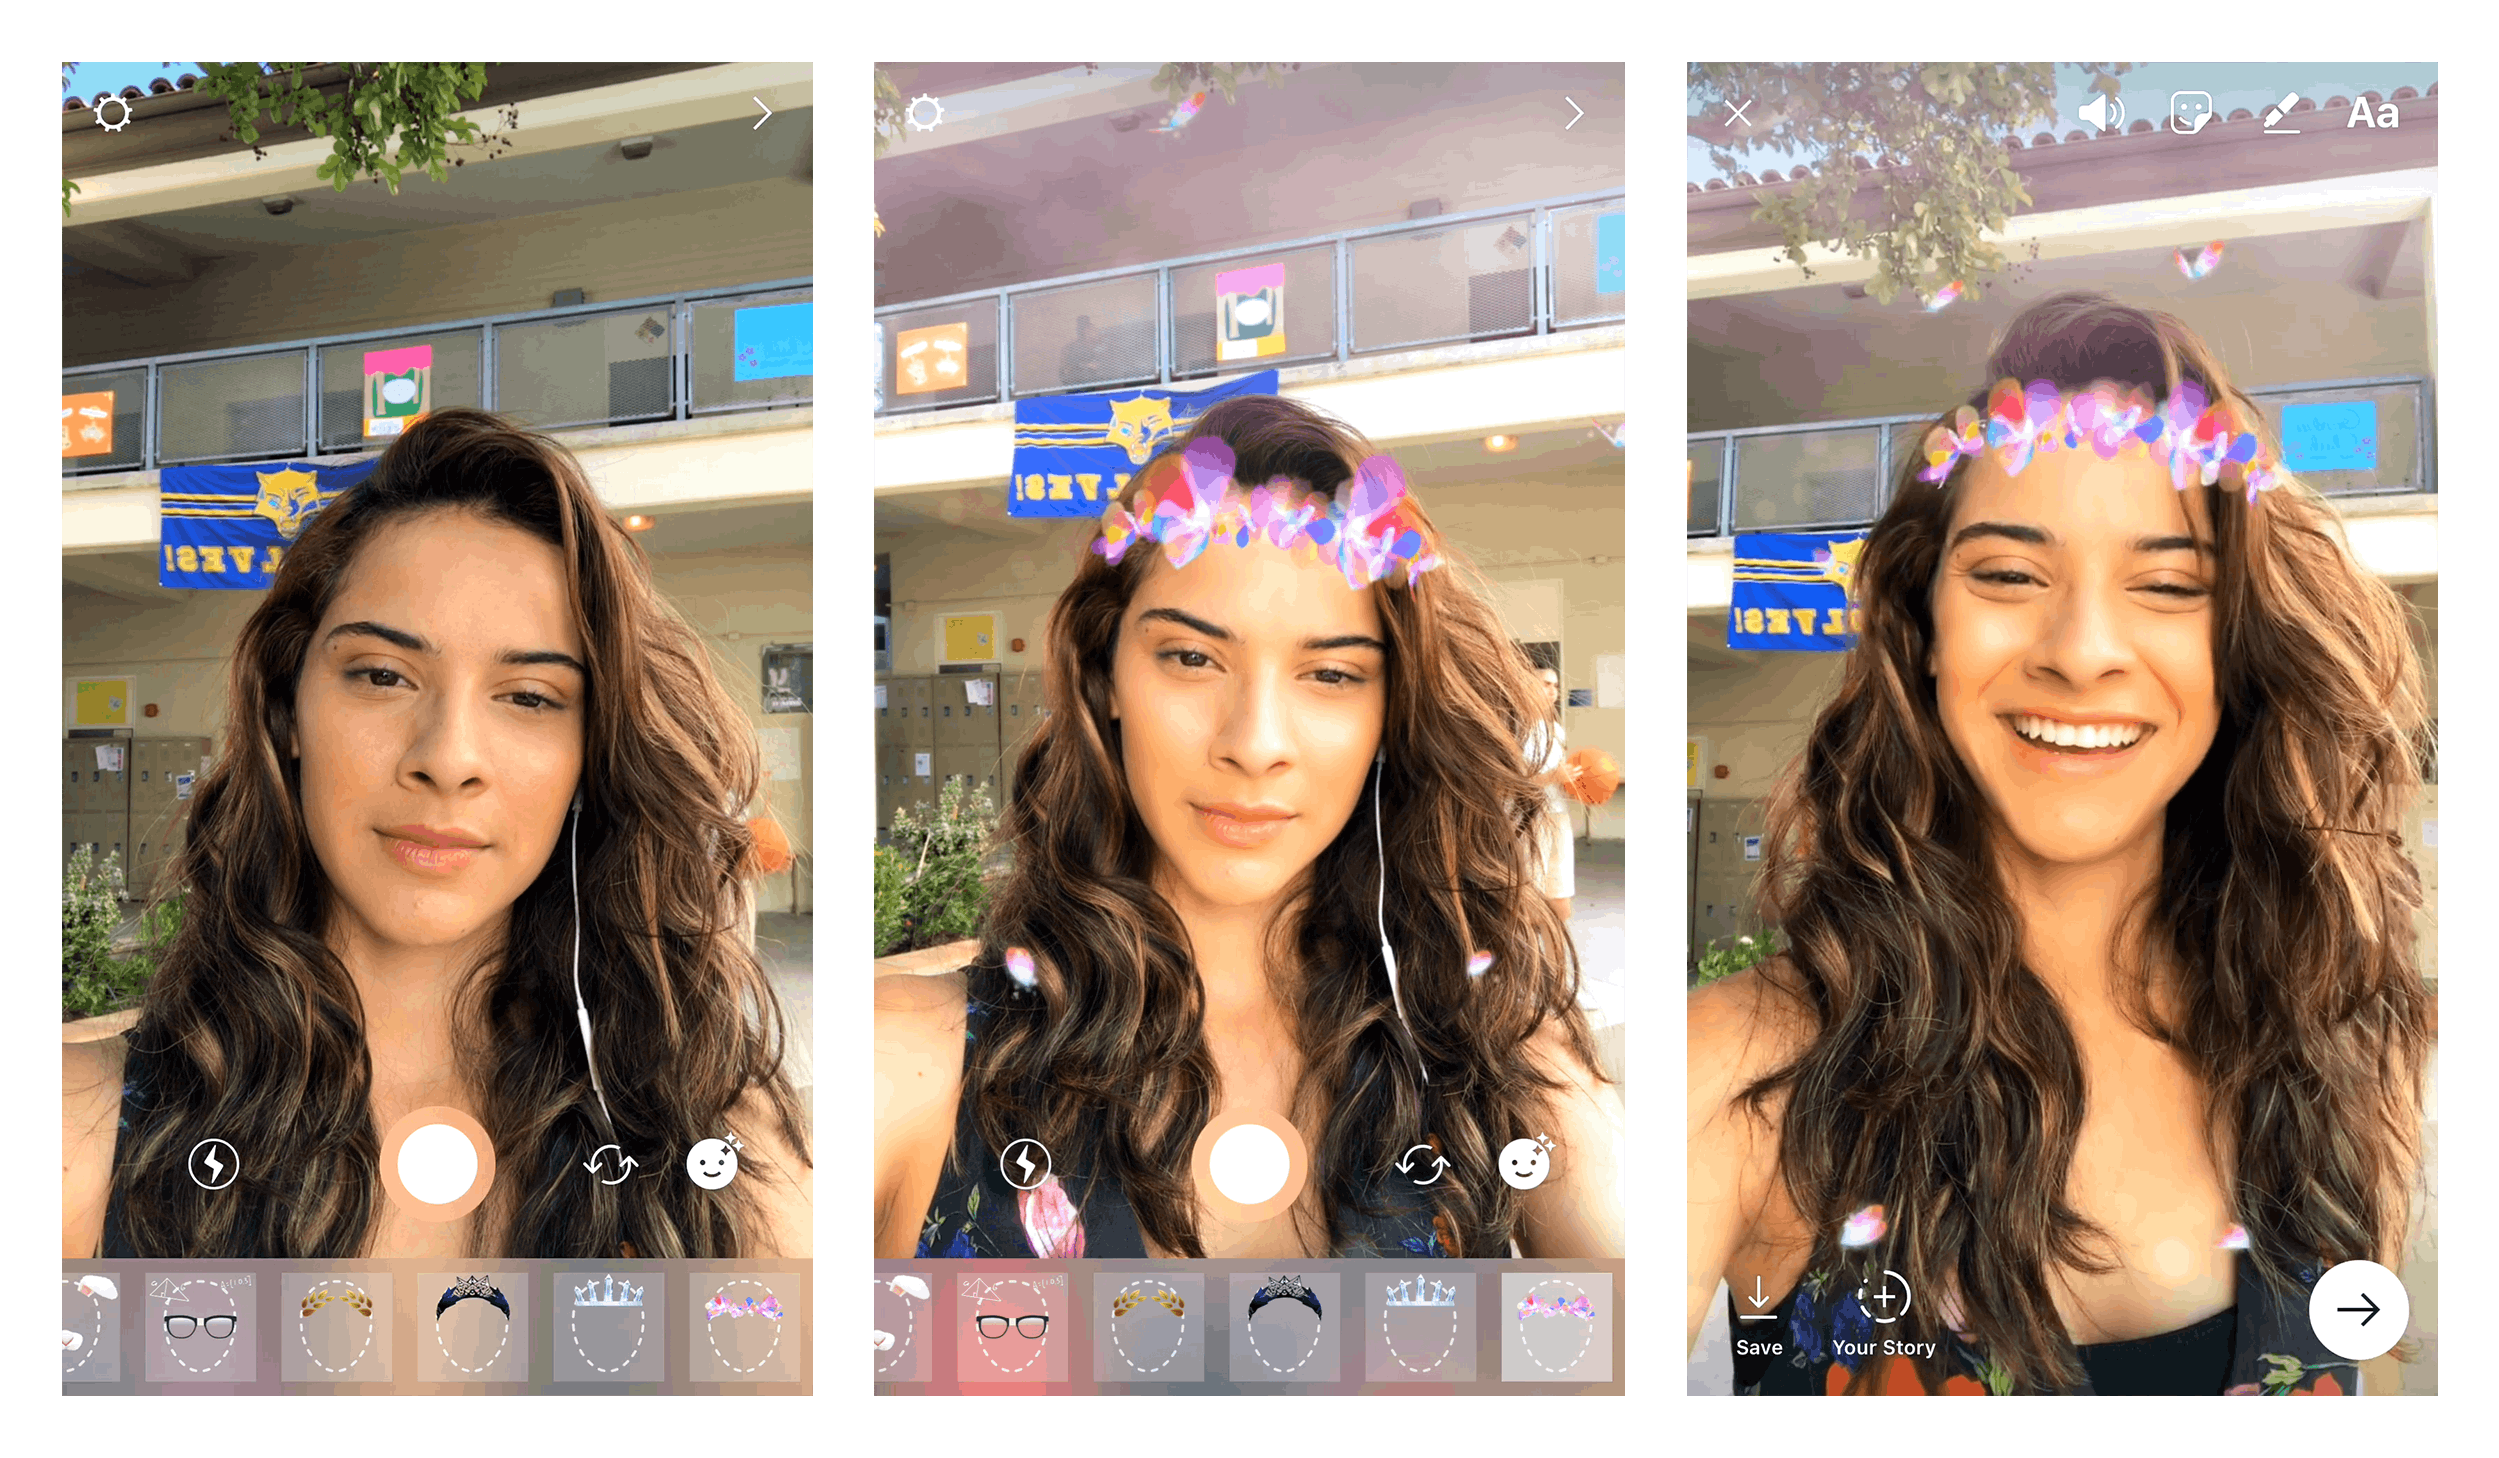 Instagram Introduces Face Filters Inspired by Snapchat